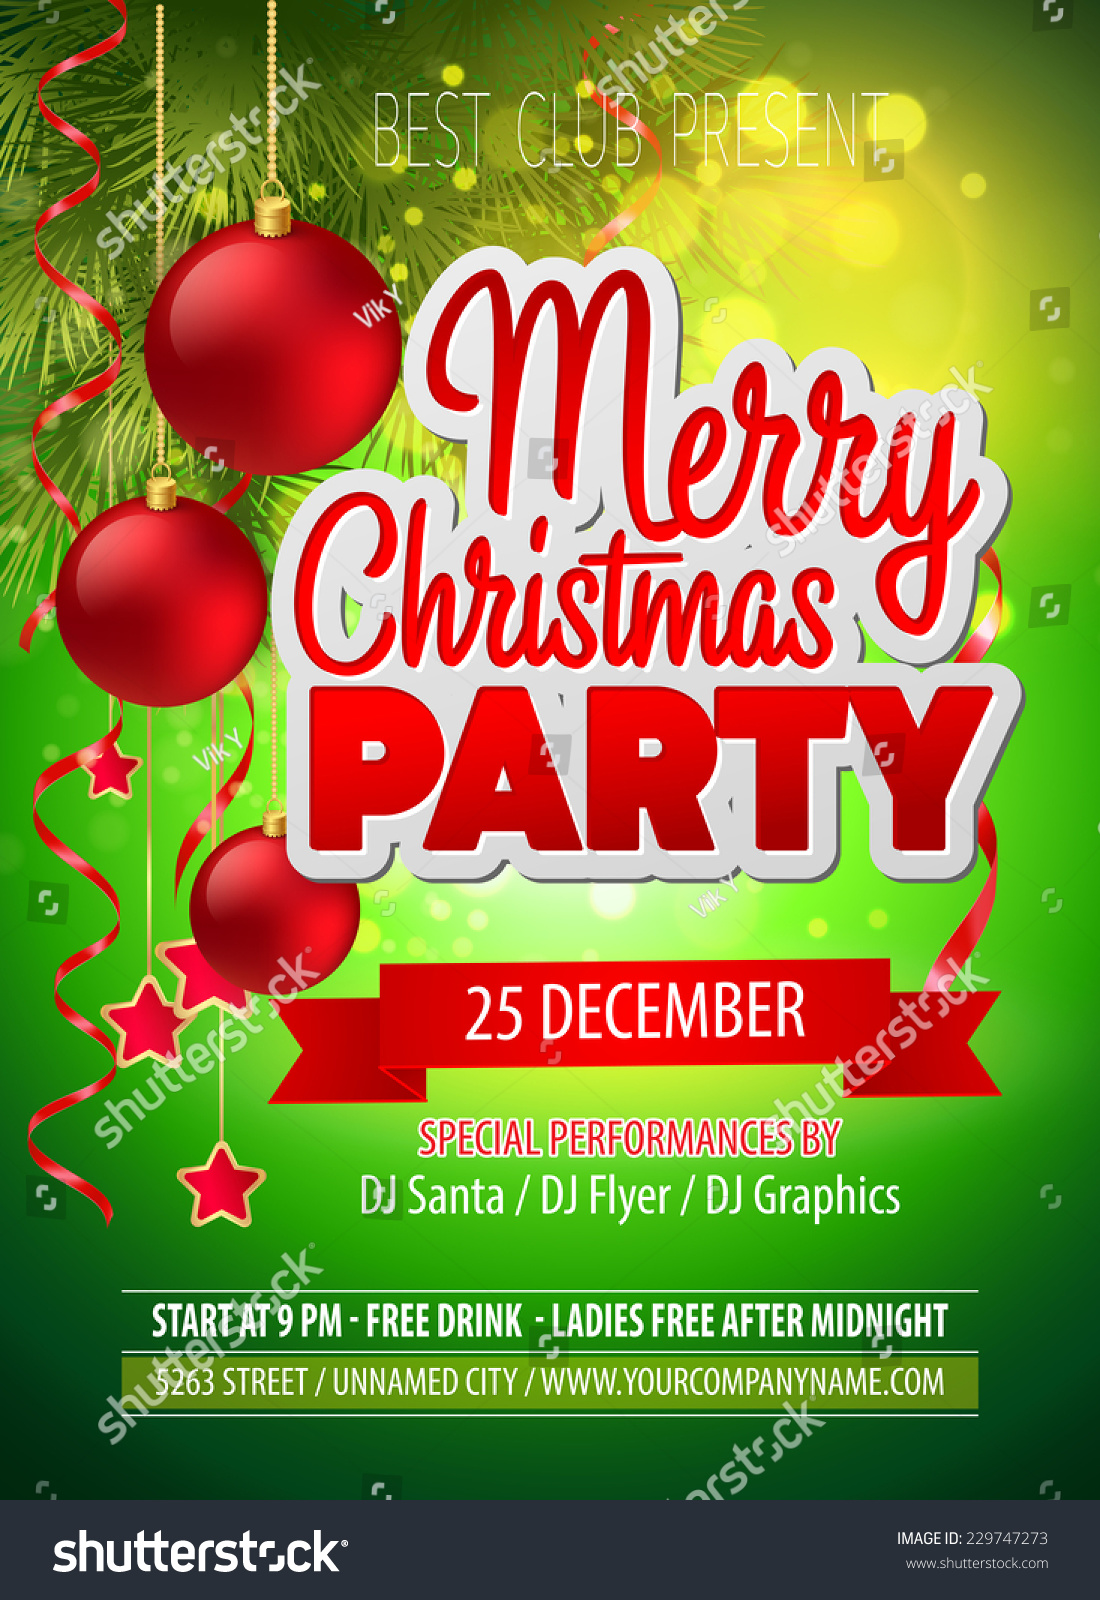 christmas party flyer vector template stock vector 229747273 christmas party flyer vector template